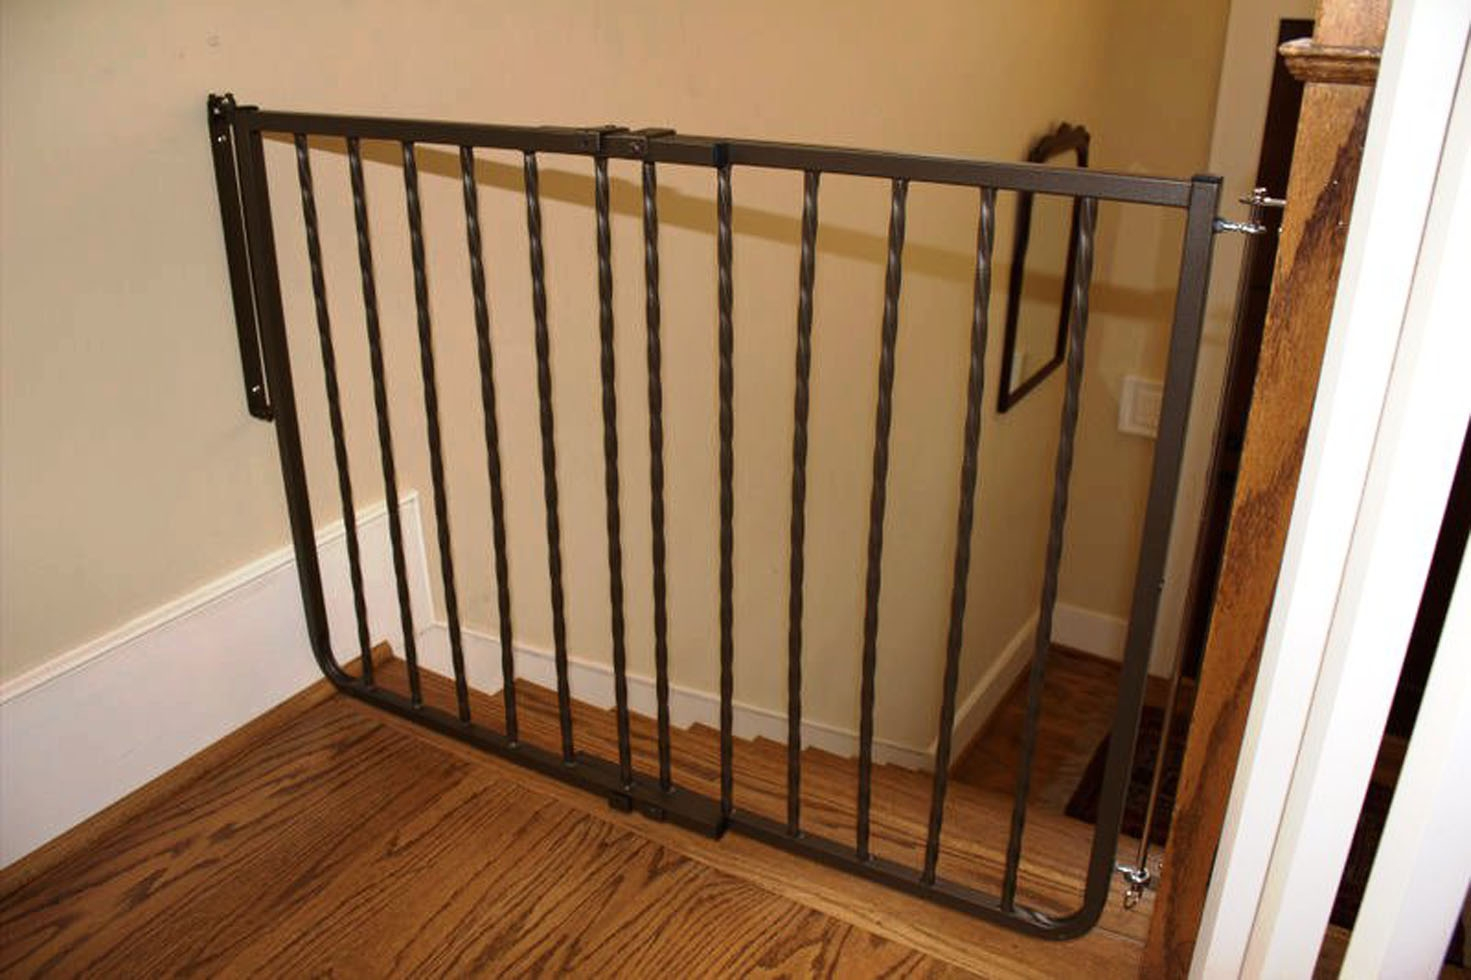 Wrought Iron Decor Gate Baby Gates Safety Gate Cardinal Gates | Steel Gates And Stairs | Dreamstime | Handrail | Stainless Steel | Fence Gate | Egress